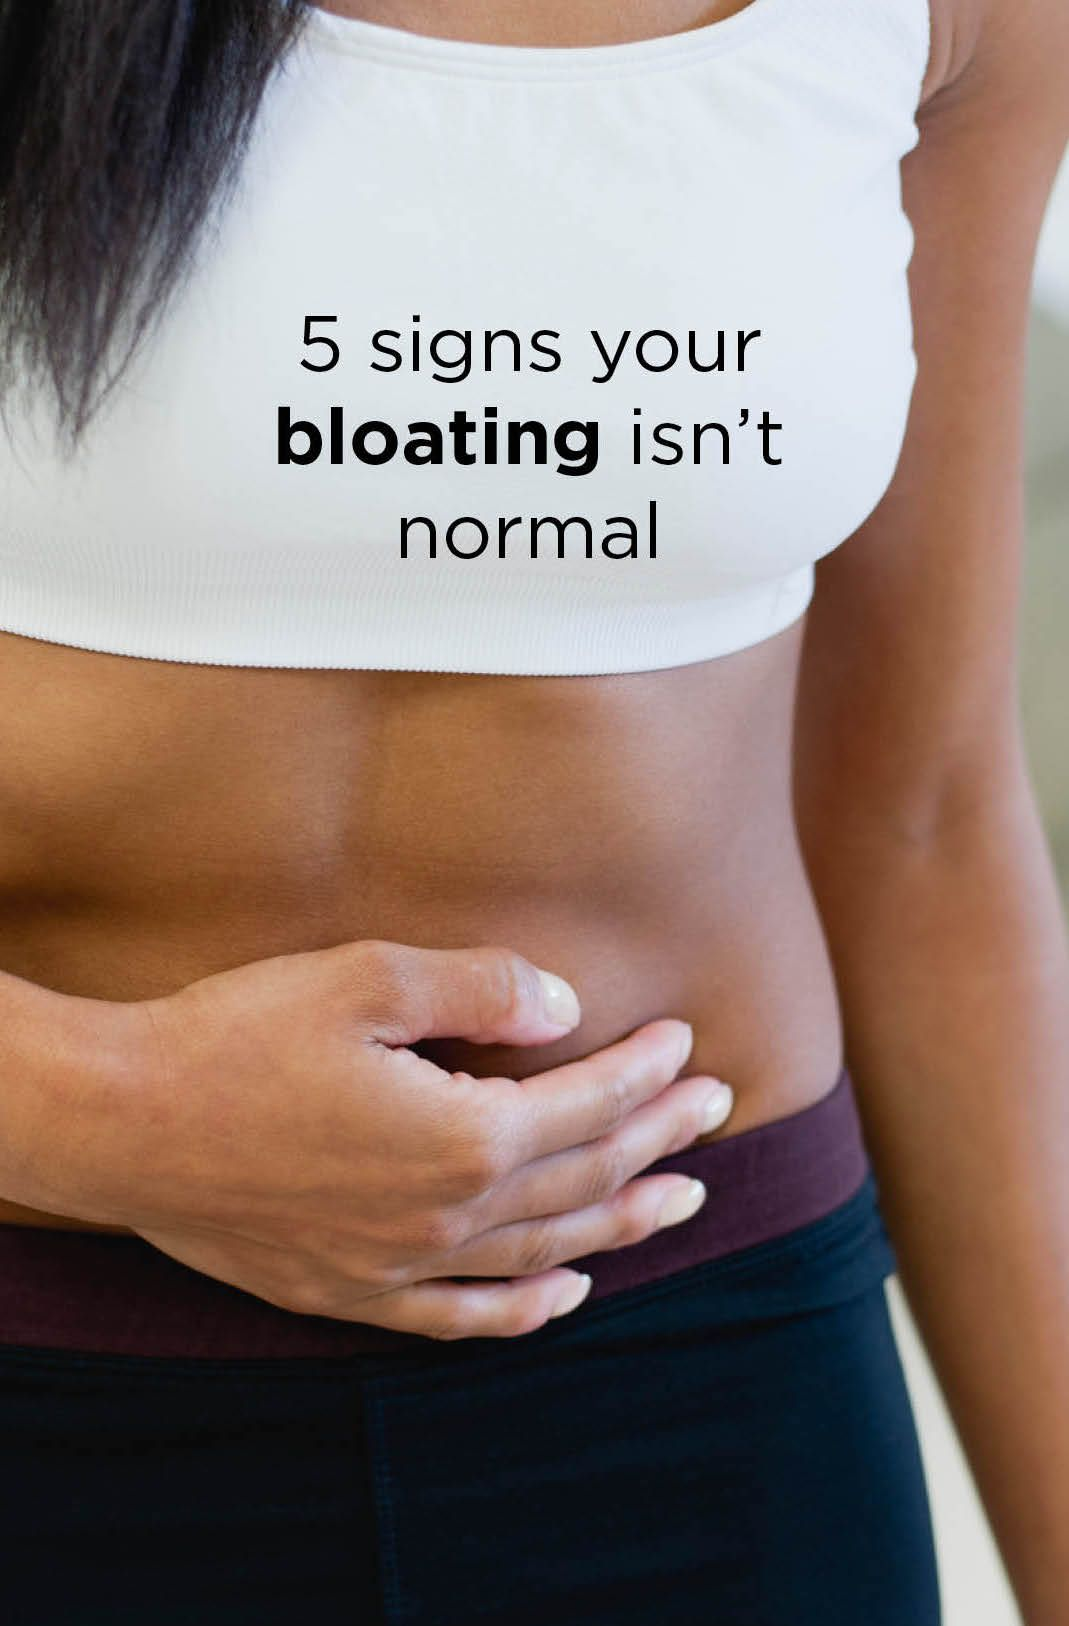 5 Signs Your Bloating Isnt Normal